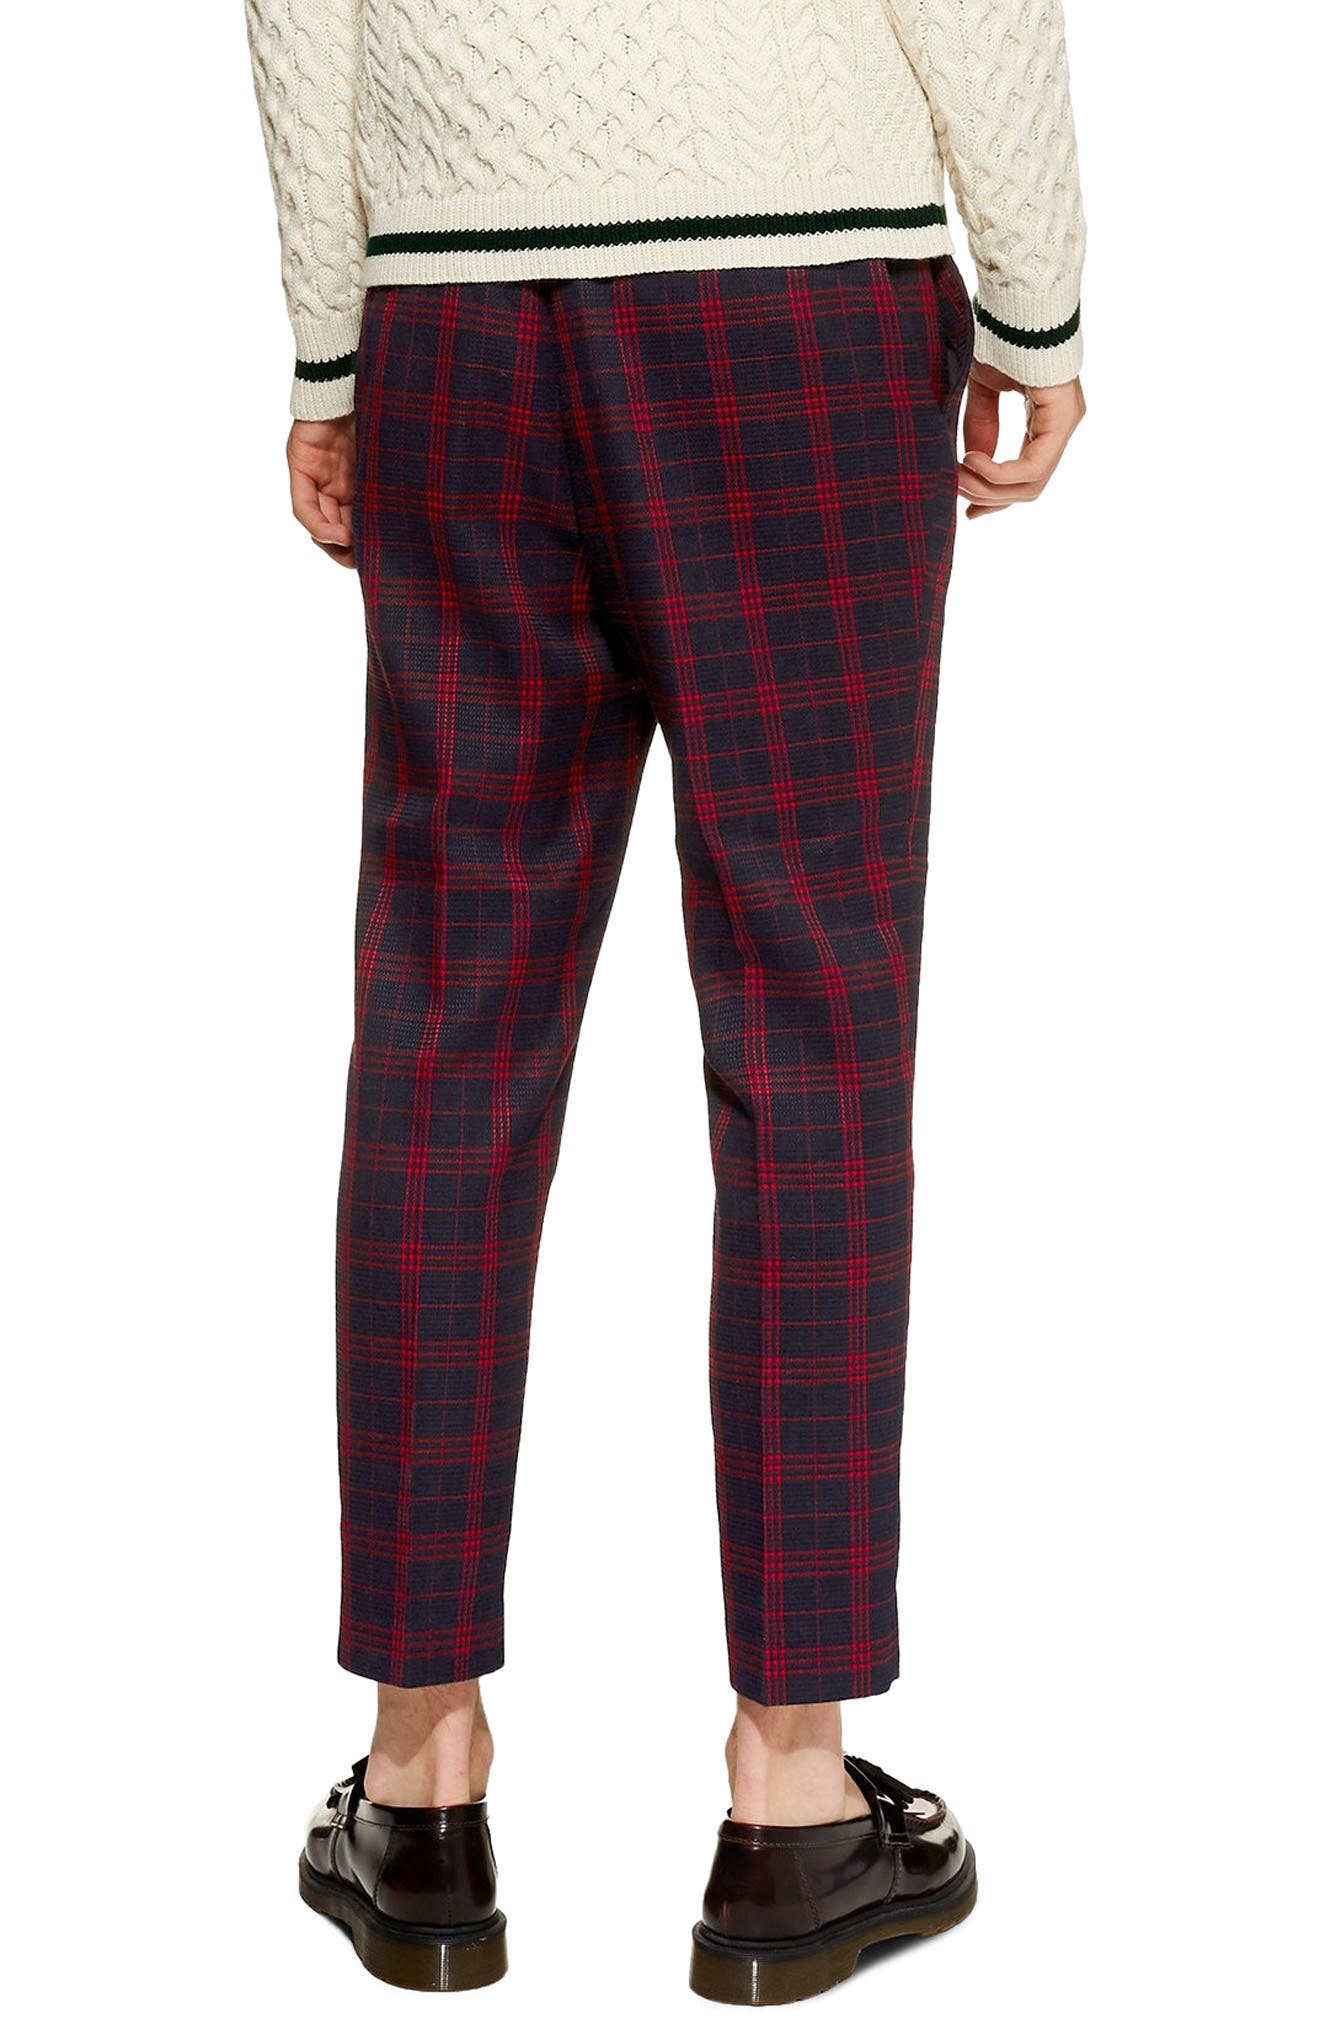 TOPMAN, Plaid Tapered Trousers, Alternate thumbnail 2, color, 401